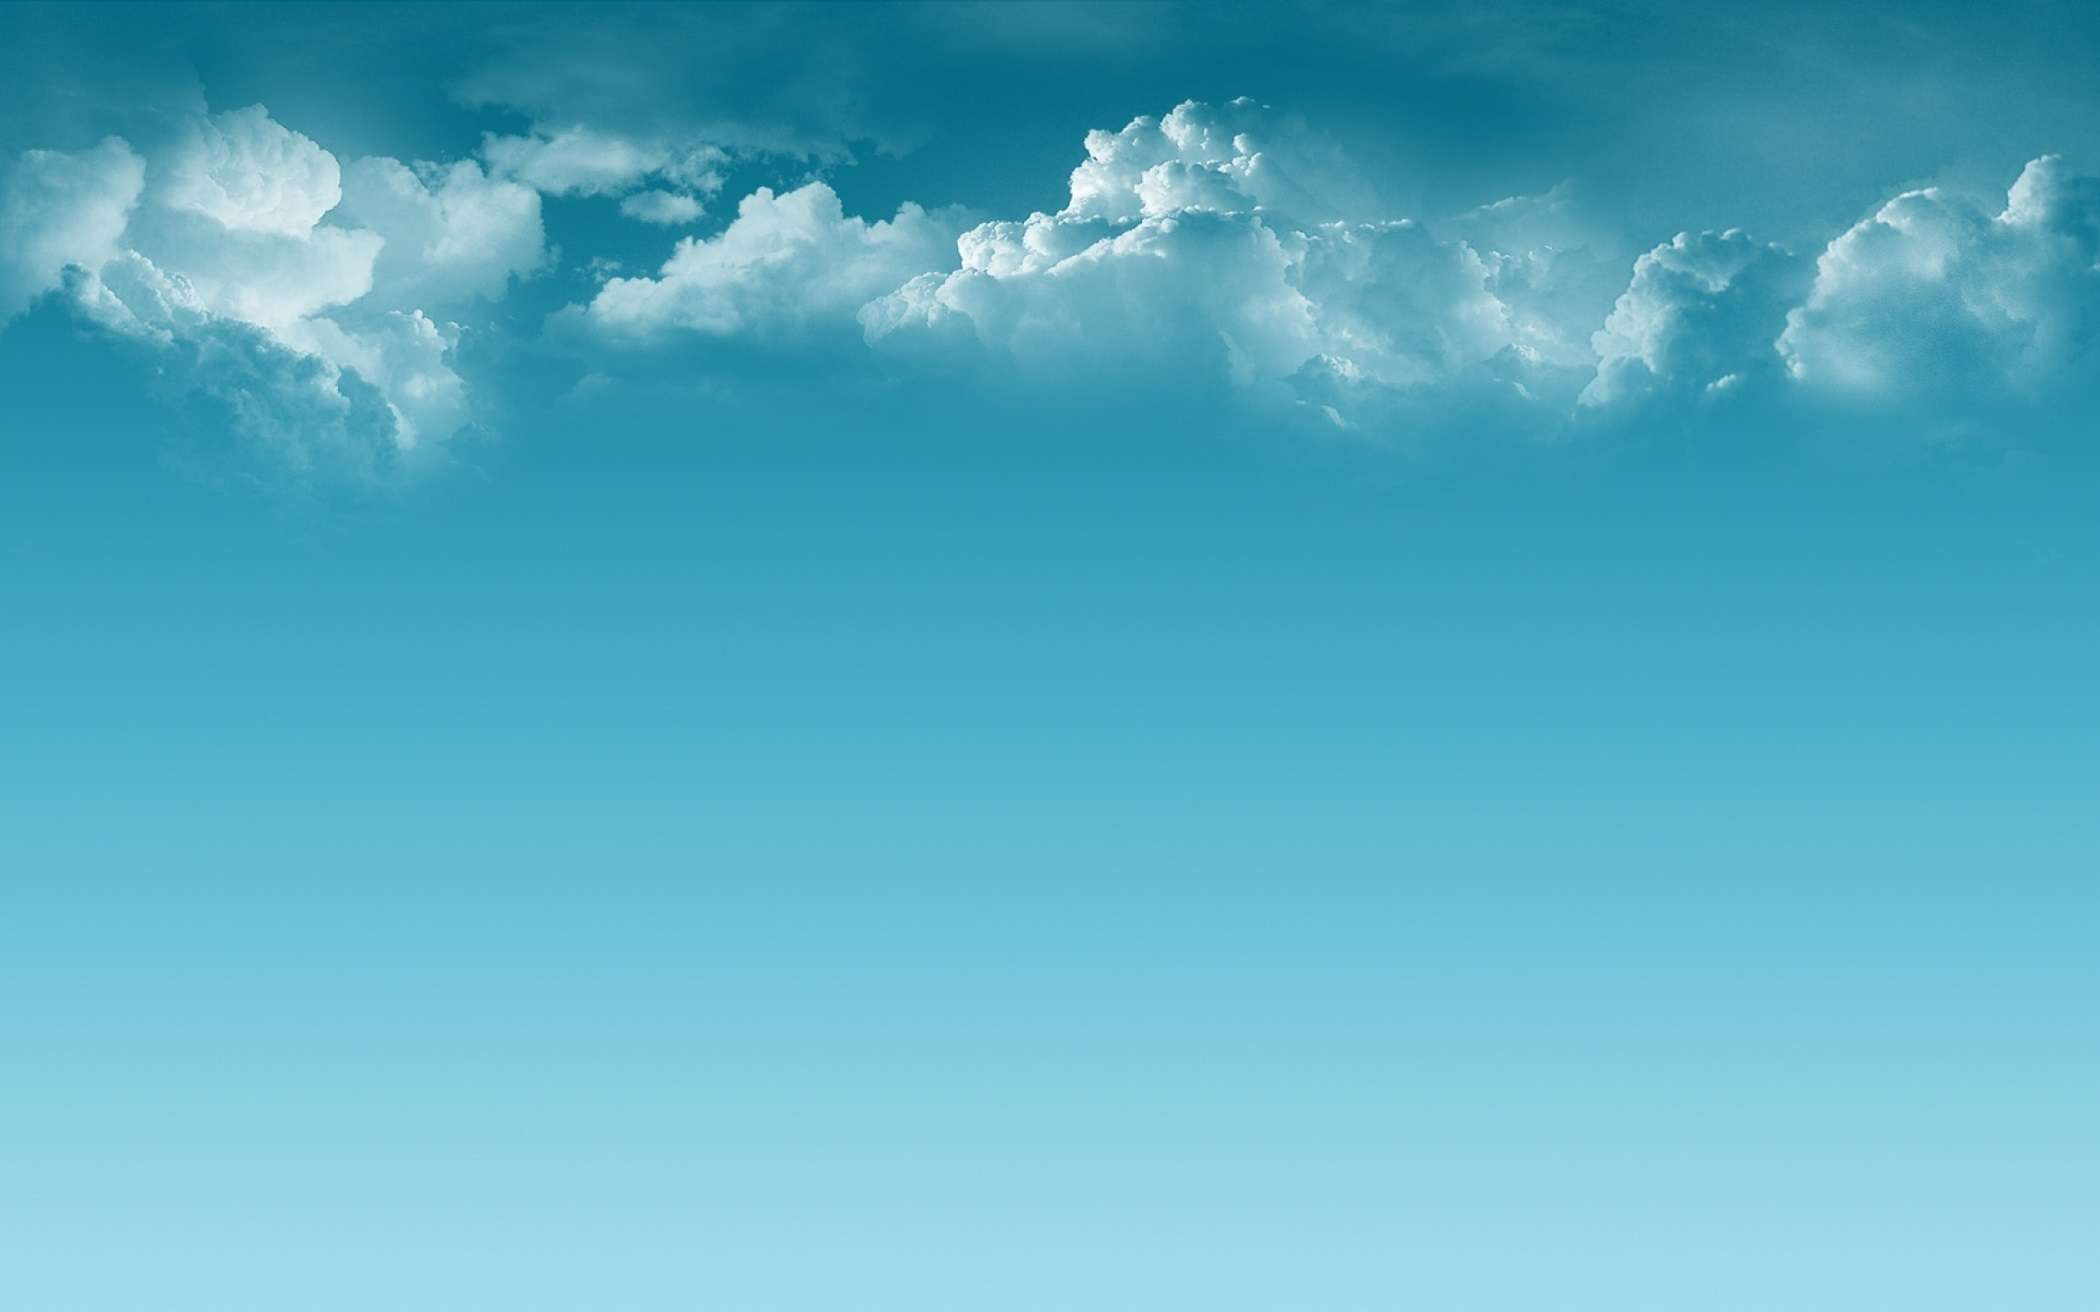 Clouds Wallpaper 035